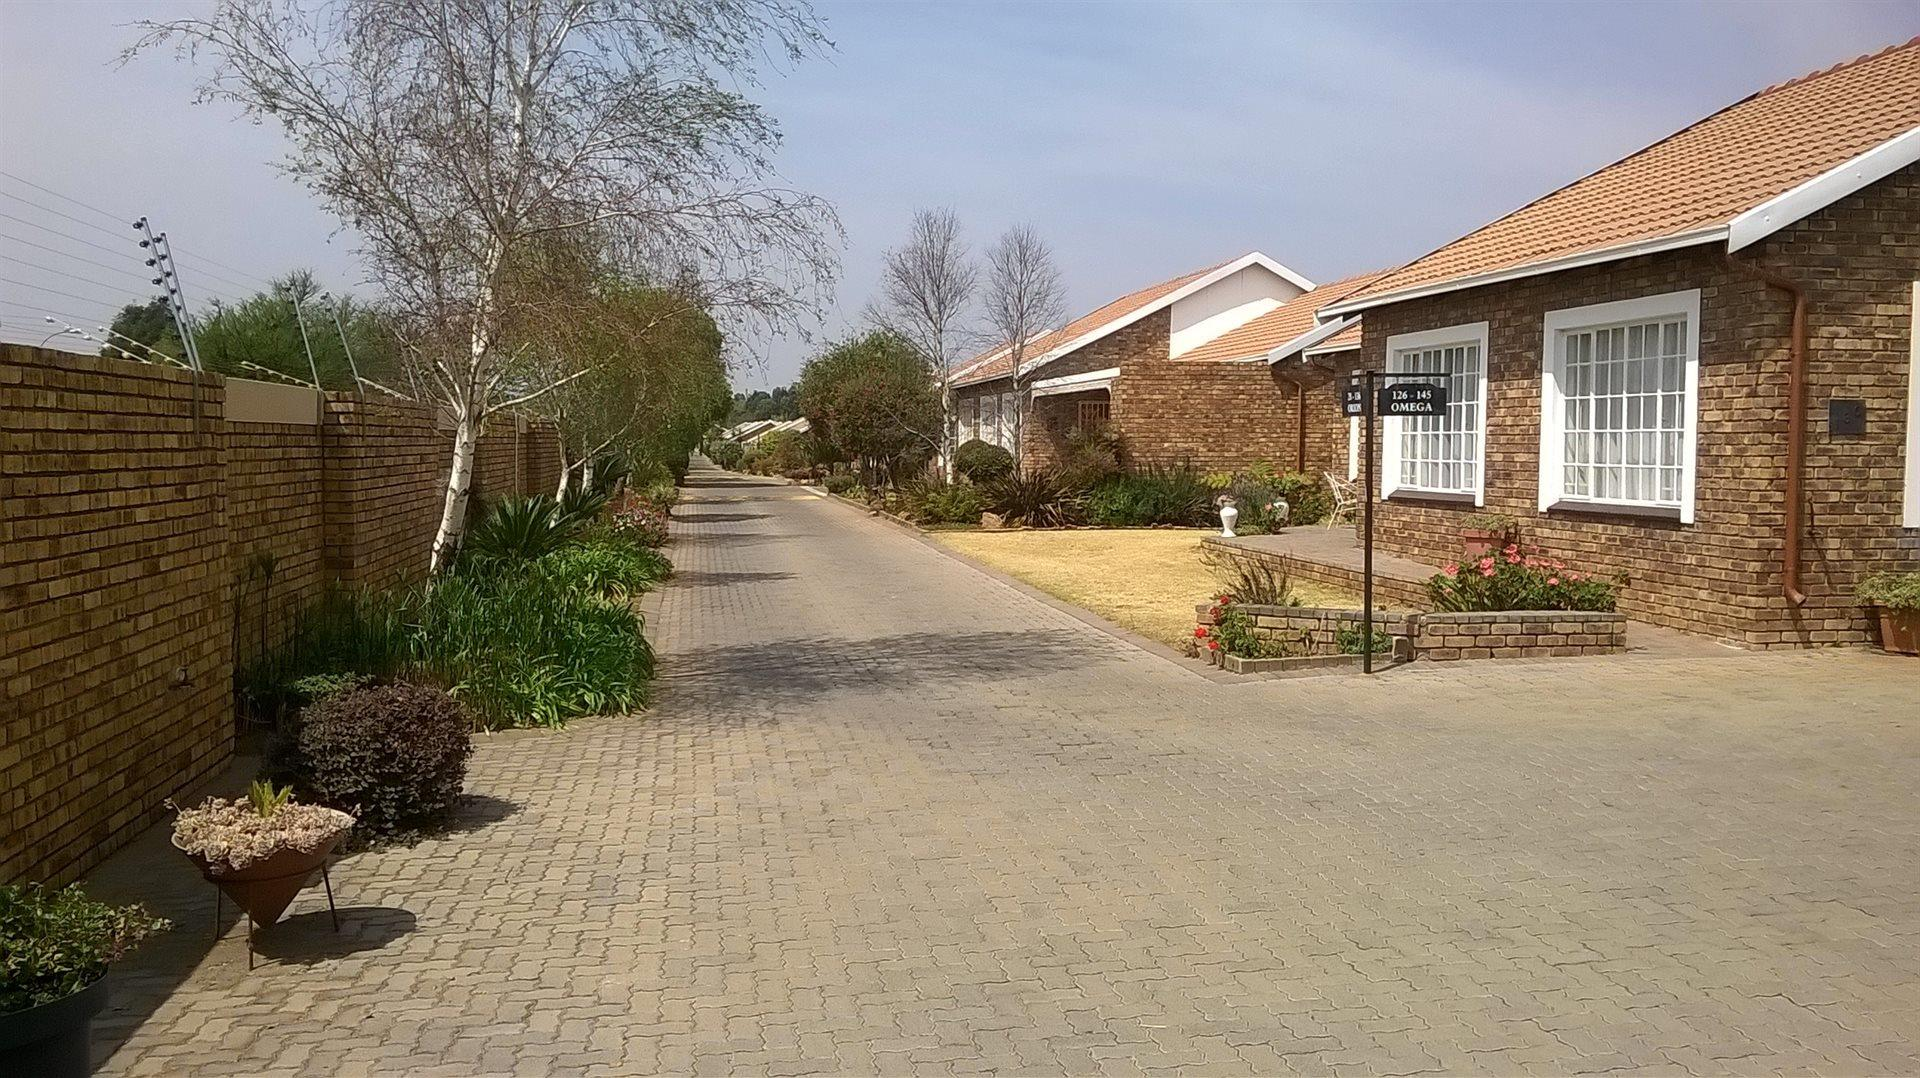 2 Bedroom  Retirement Village for Sale in Roodepoort - Gauteng